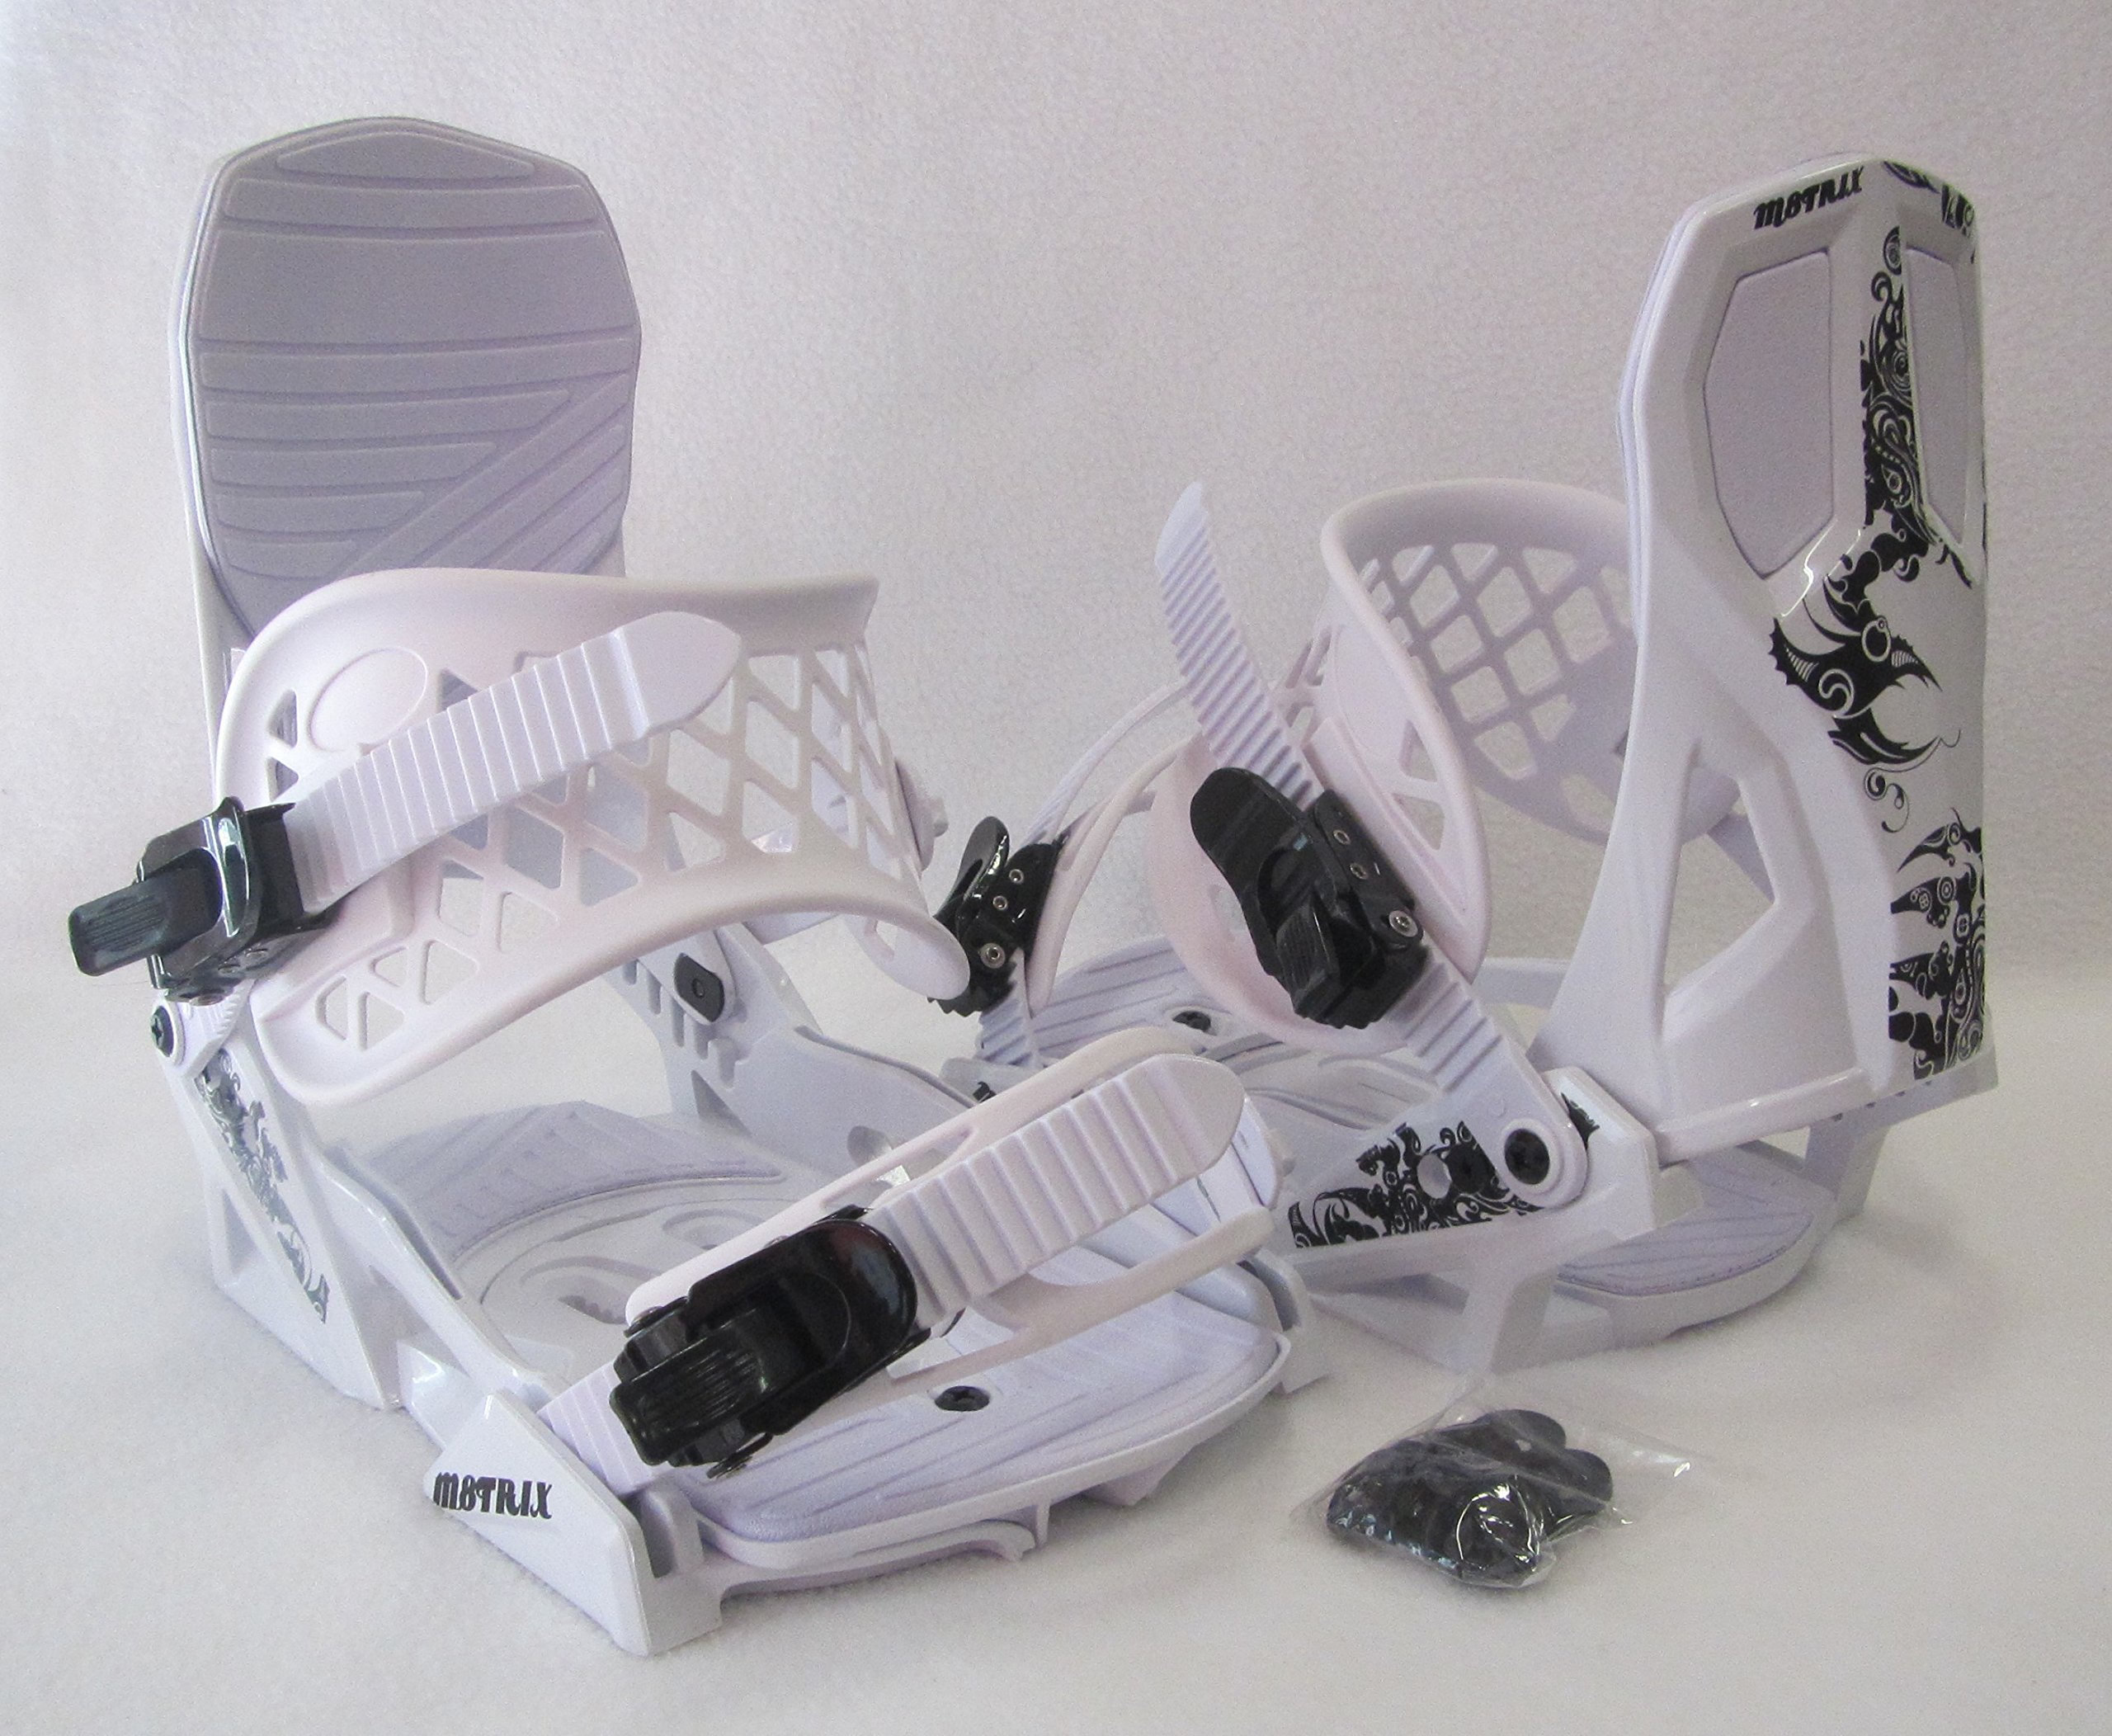 MEN'S M8TRIX SNOWBOARD BINDINGS (4X4 PATTERN) LARGE BOOT SIZES: 10-12 (WHITE/BLACK) by M8TRIX